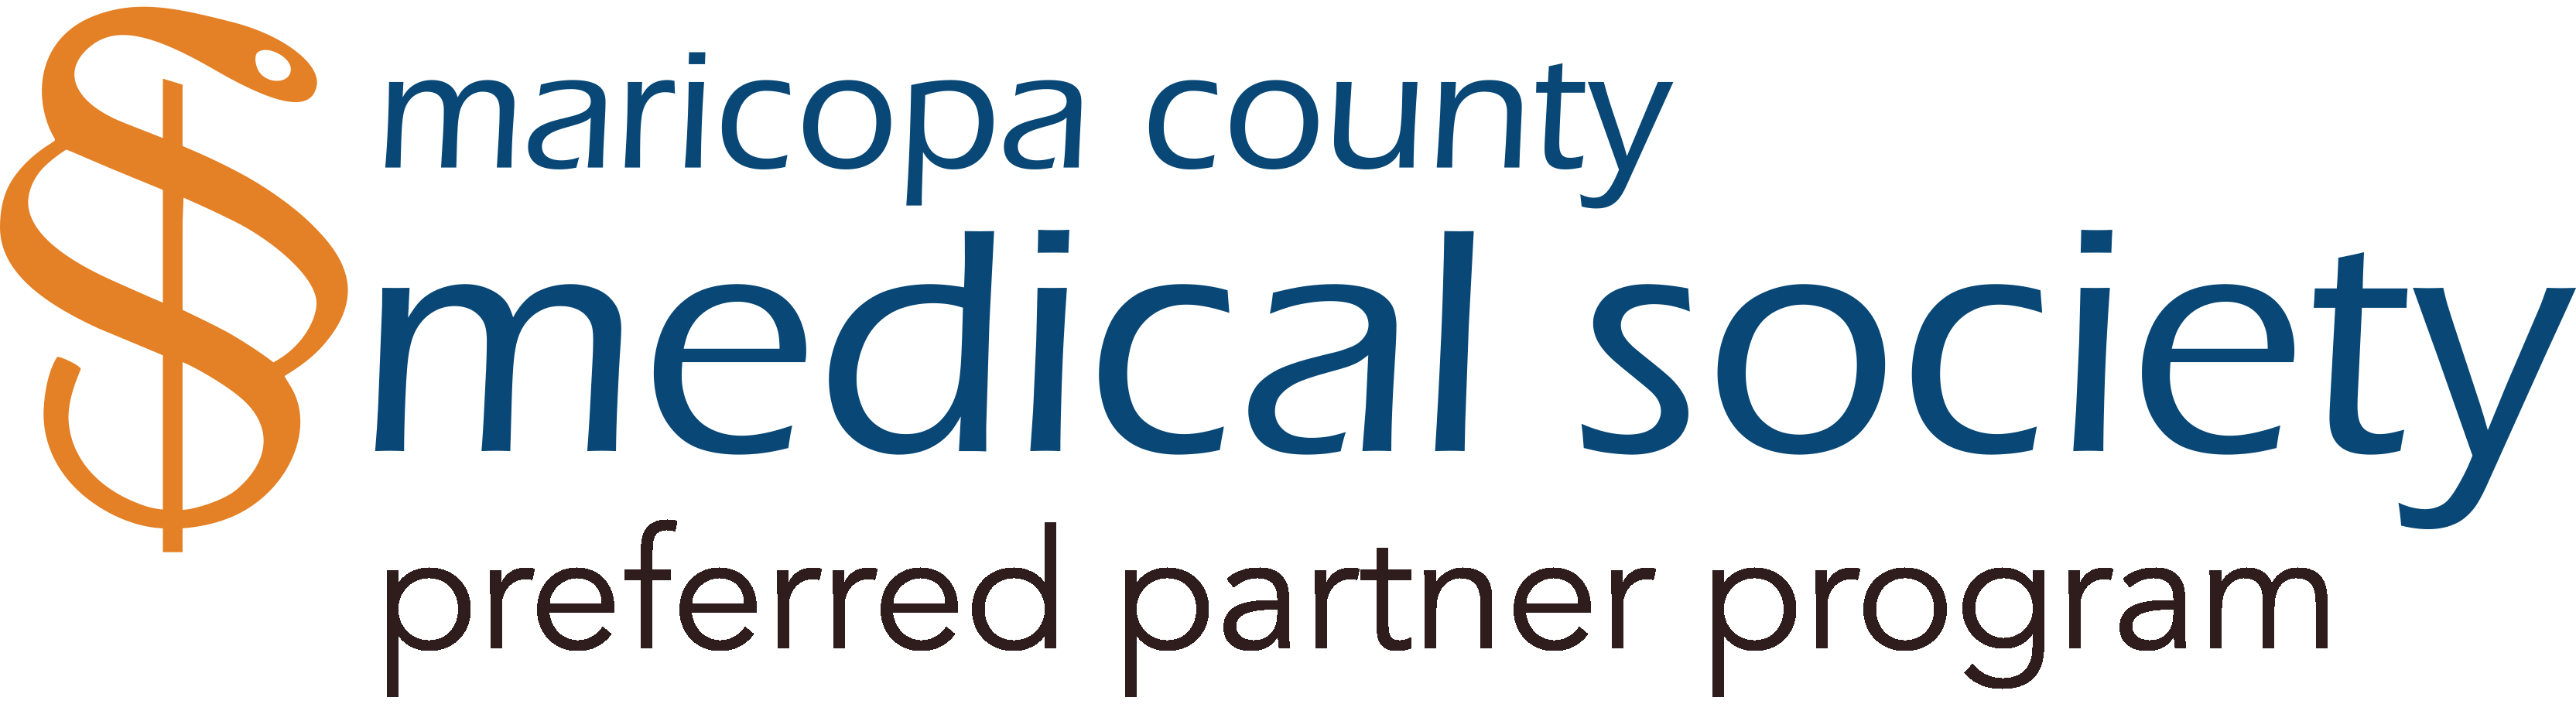 Maricopa County Medical Society Partner